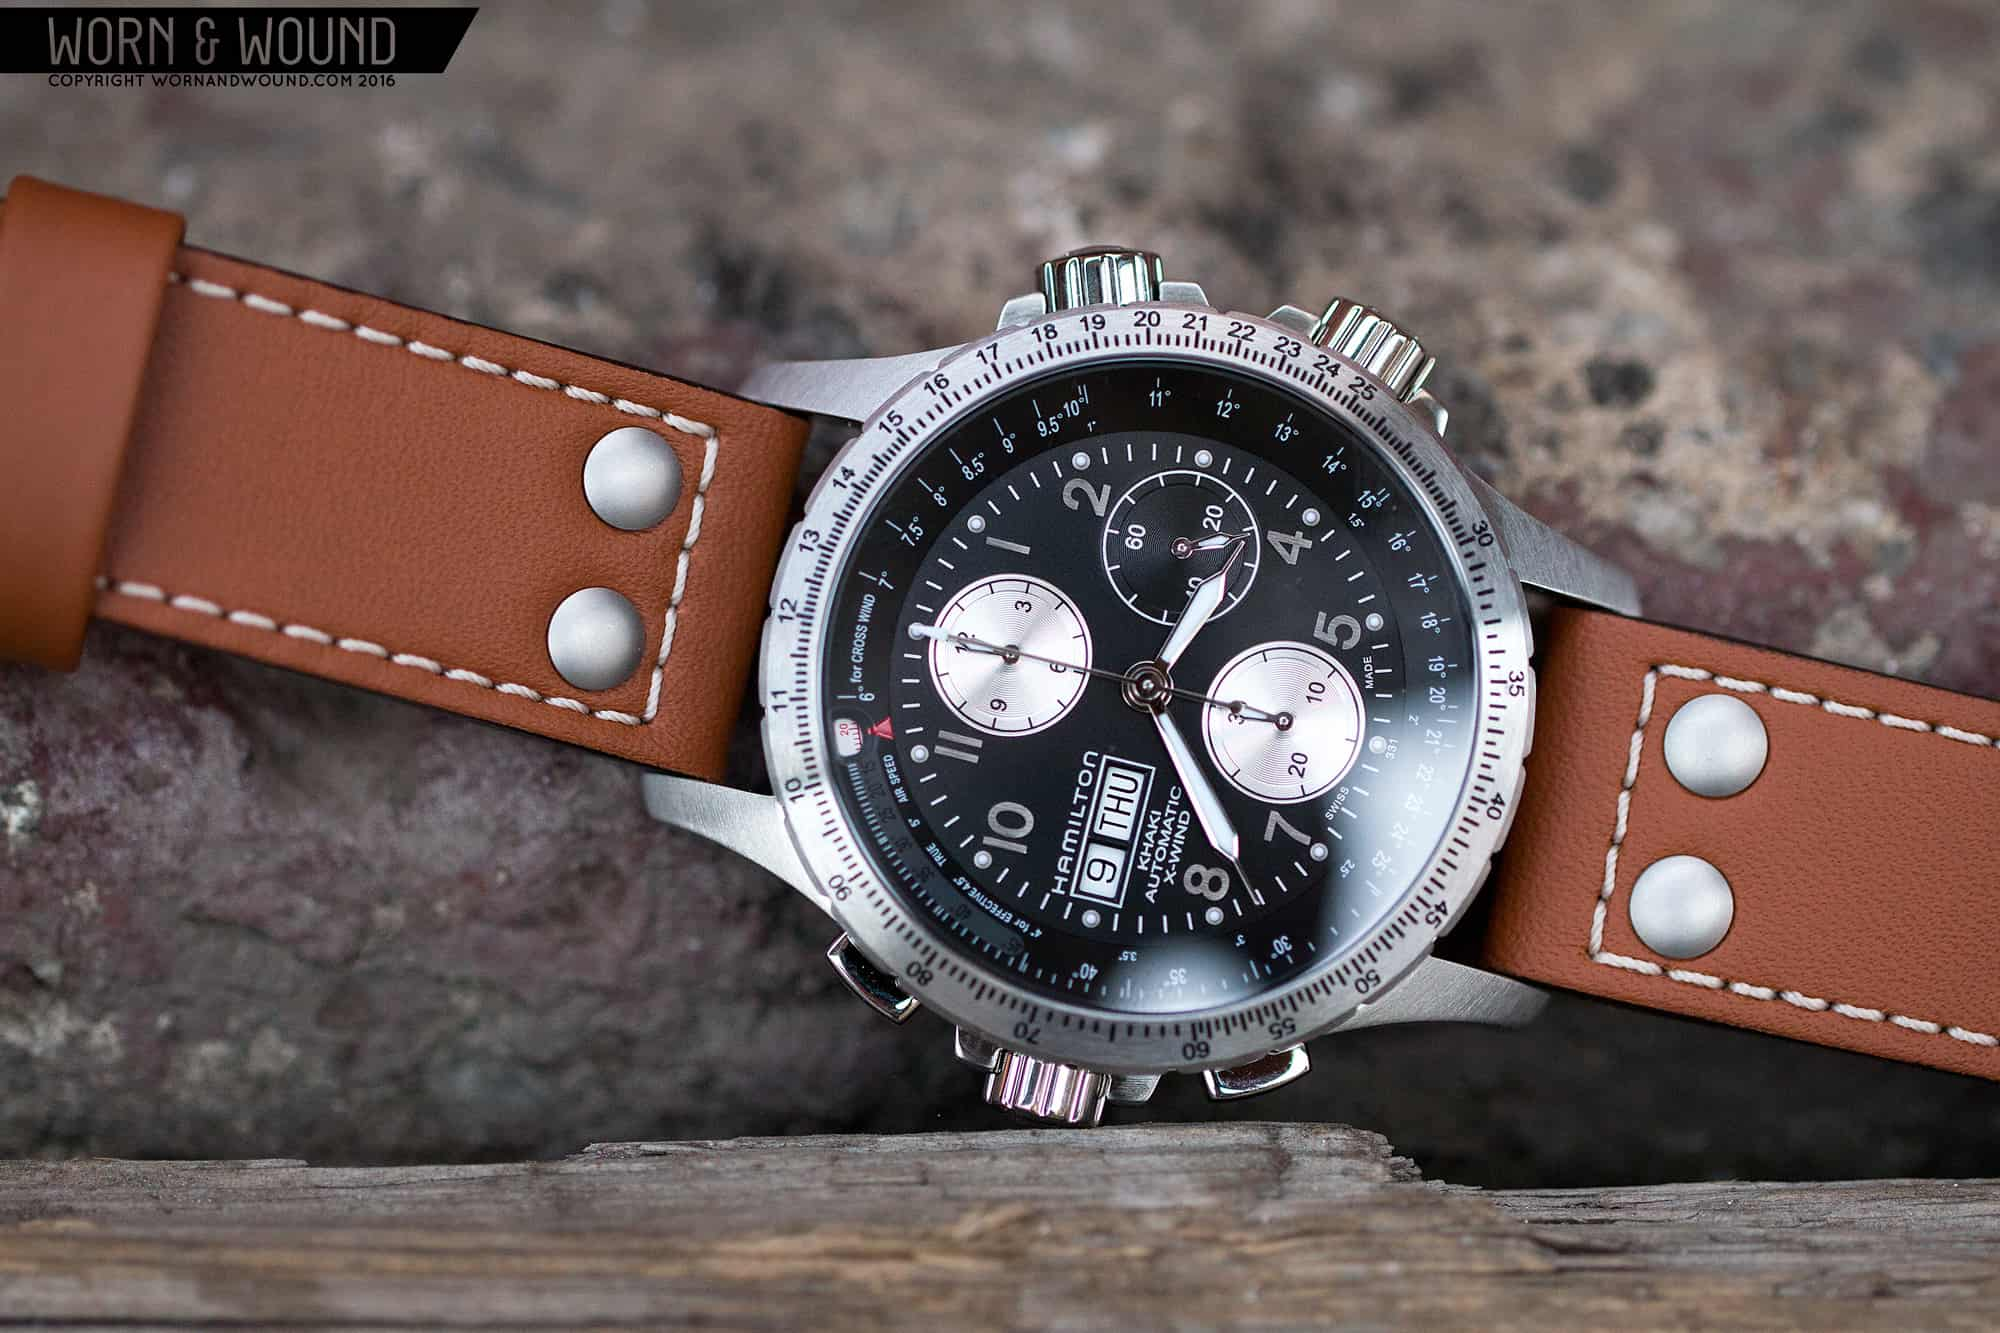 ec5947db36e Hamilton X-Wind Automatic Chronograph Review - Worn   Wound